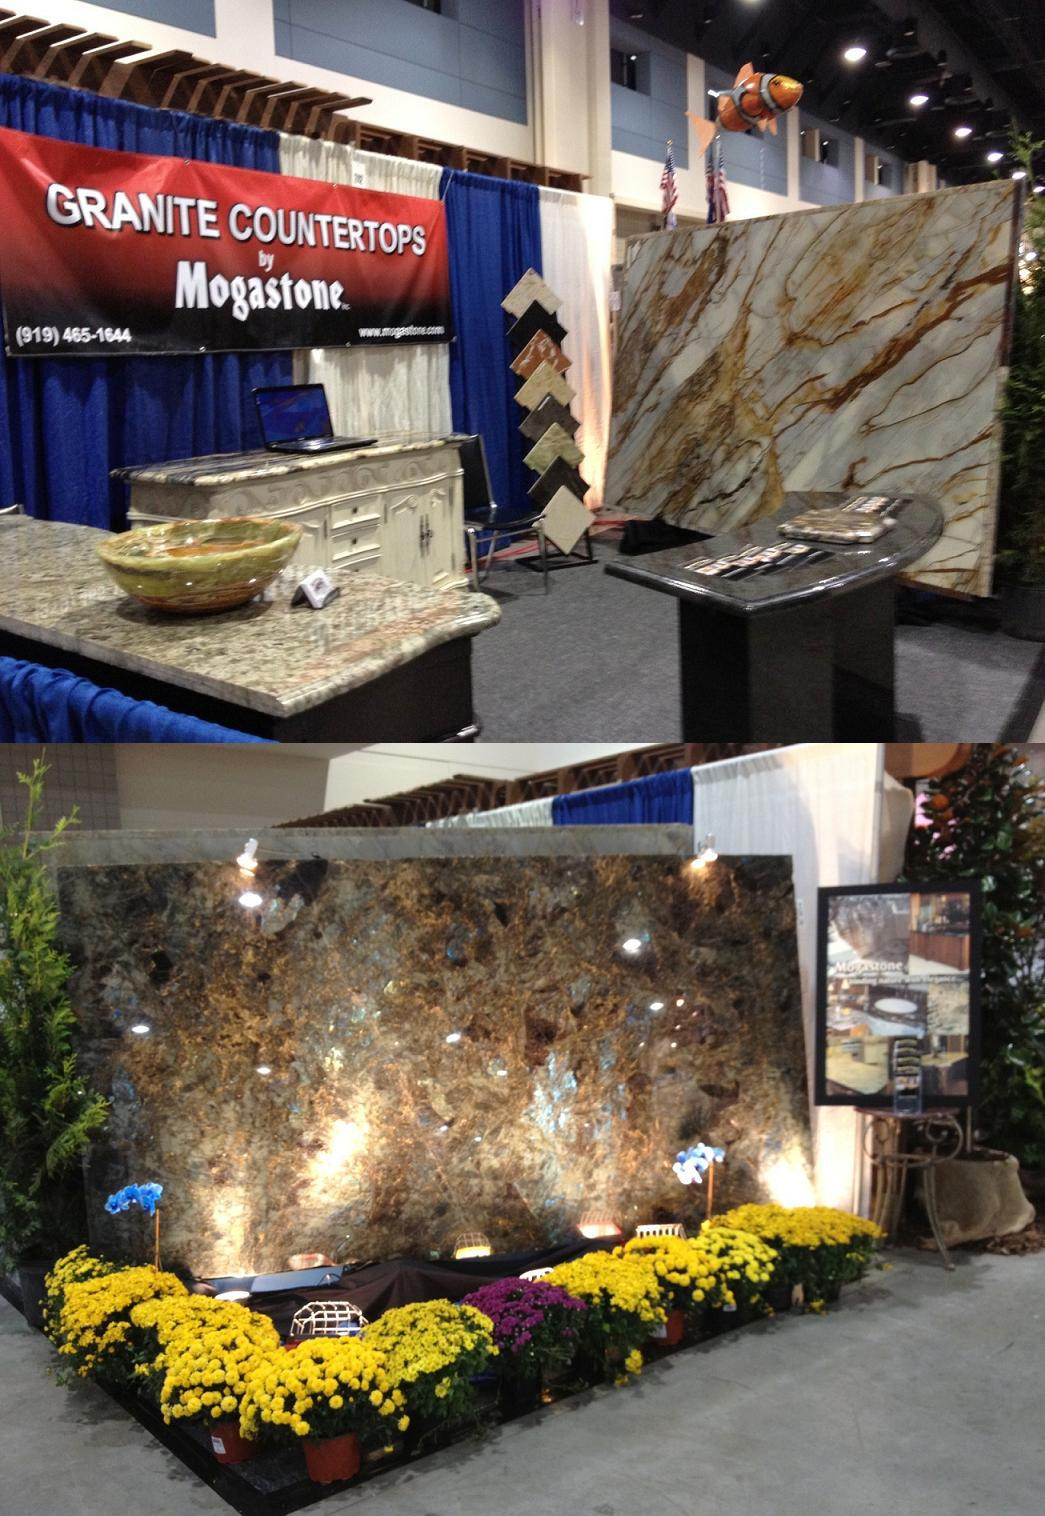 Granite Slabs For Photo Booth : Granite countertops by mogastone